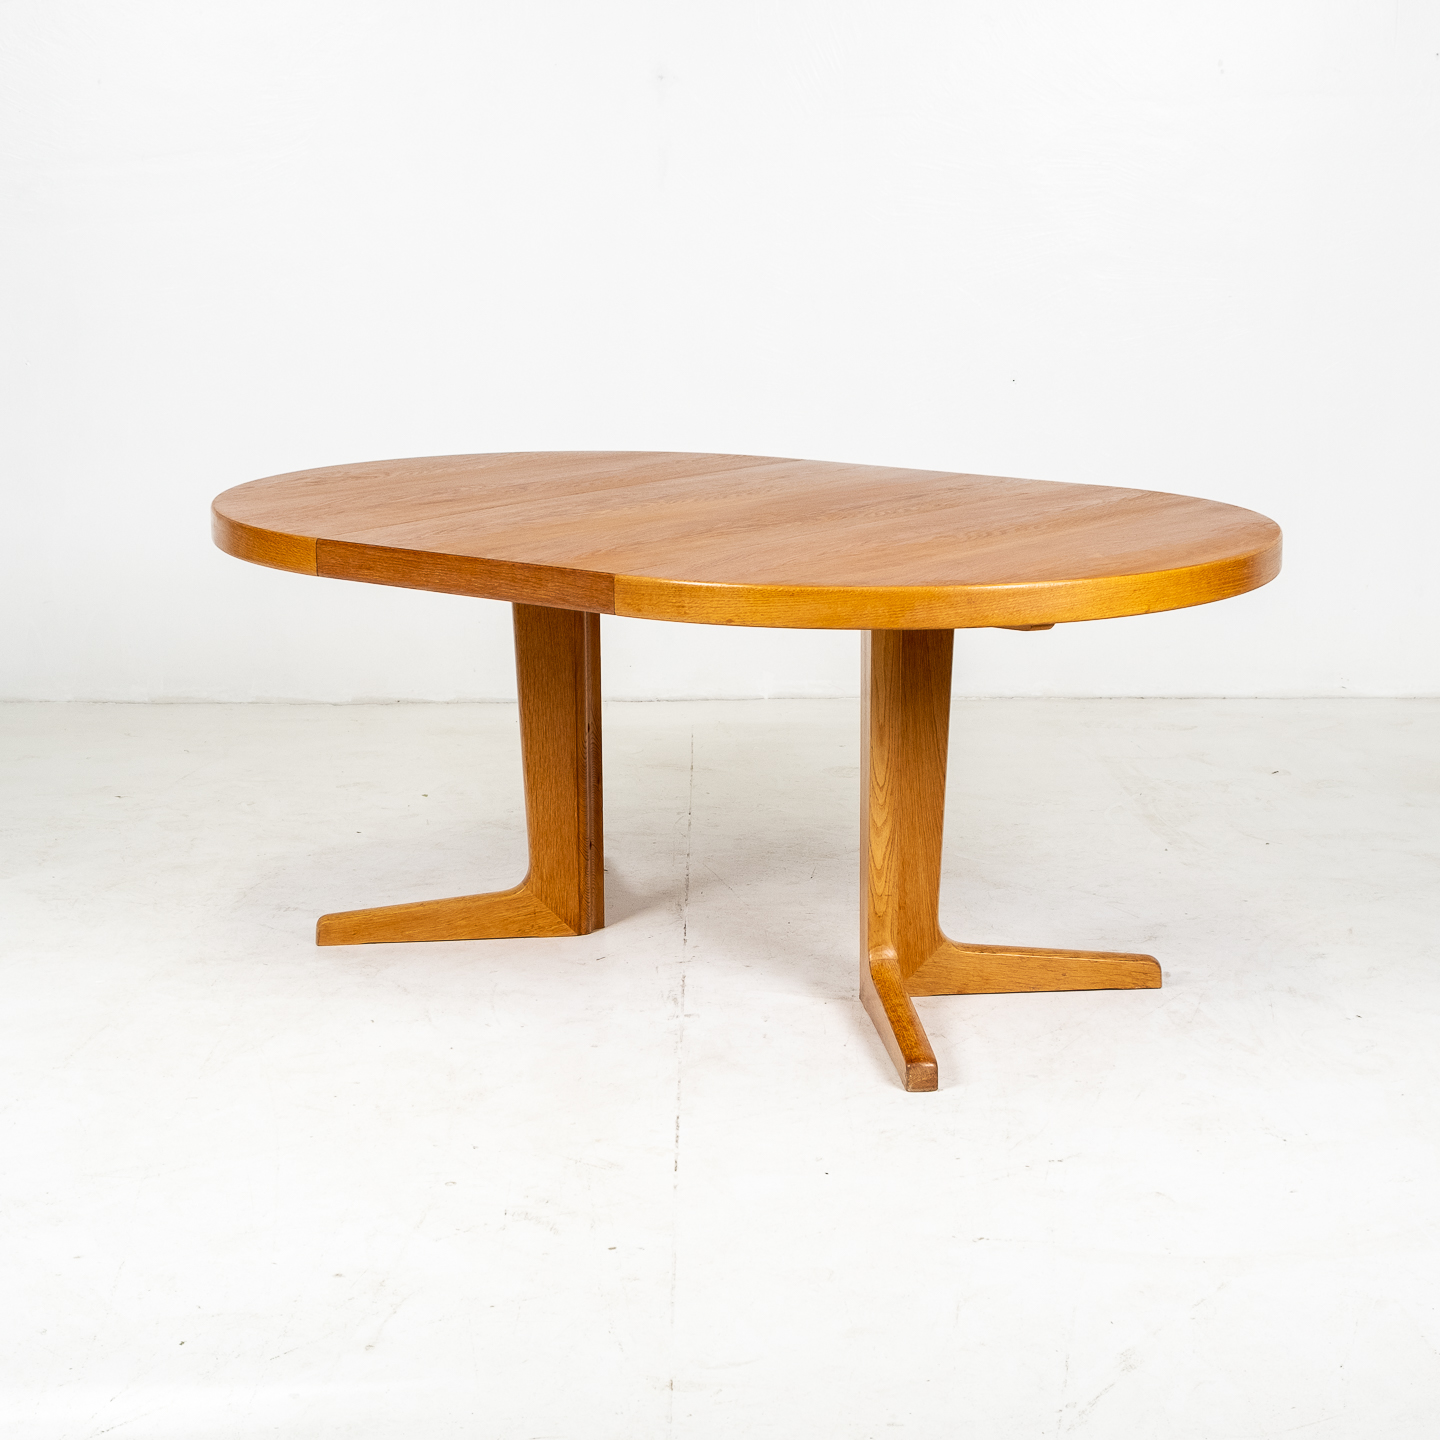 Round Pedestal Dining Table In Oak With Three Extension Leaves, 1960s, Denmark04